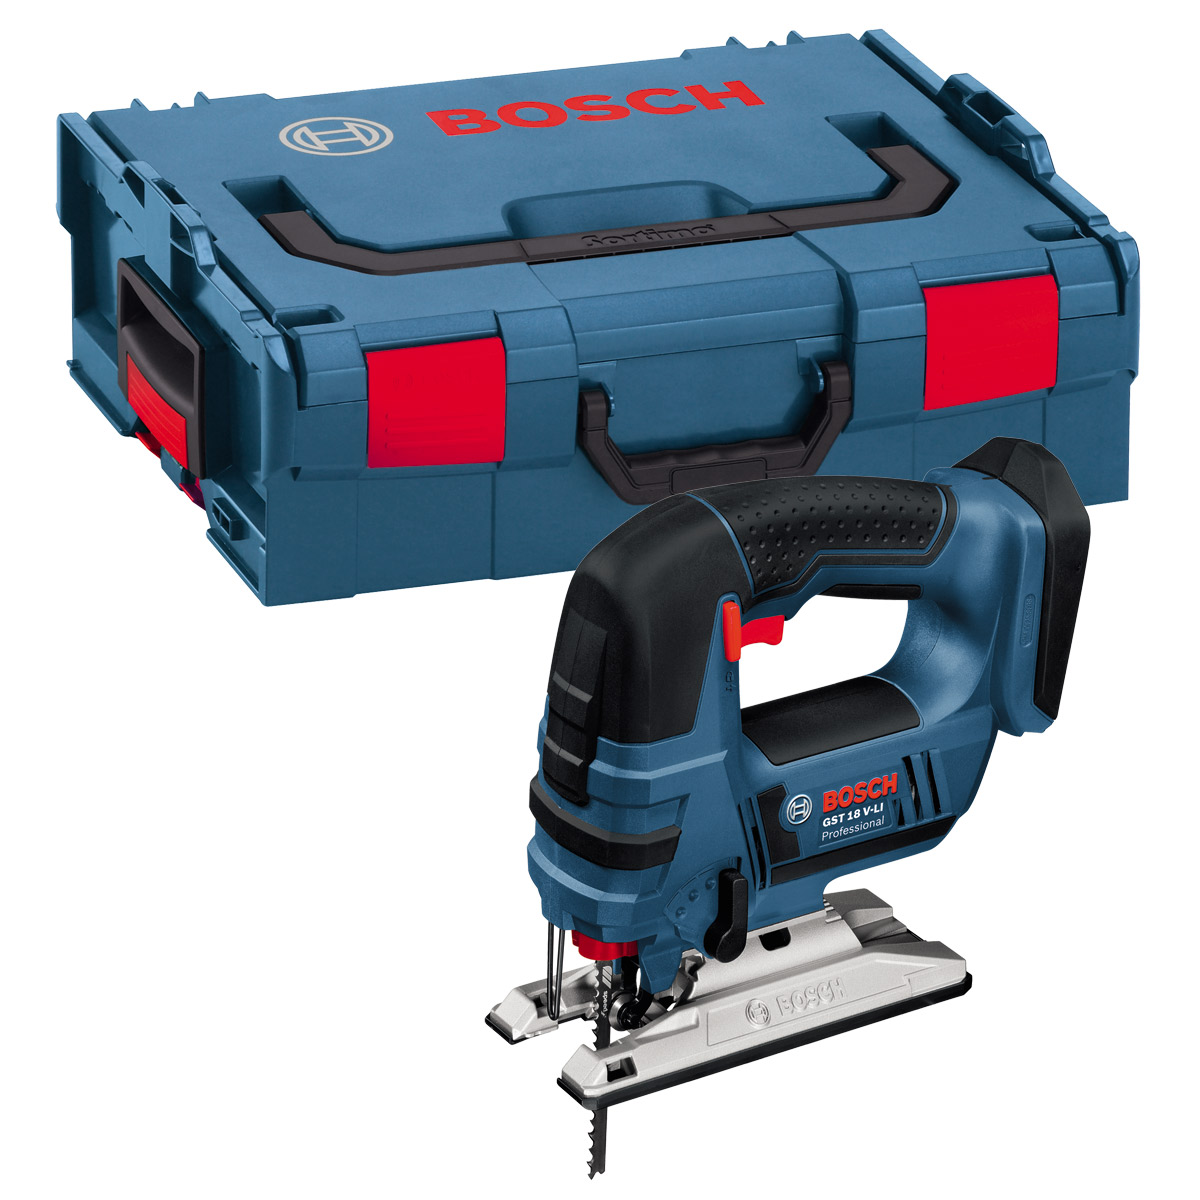 BOSCH GST18V-LIBN 18V BRUSHLESS JIGSAW (Body Only) SUPPLIED IN L-BOXX